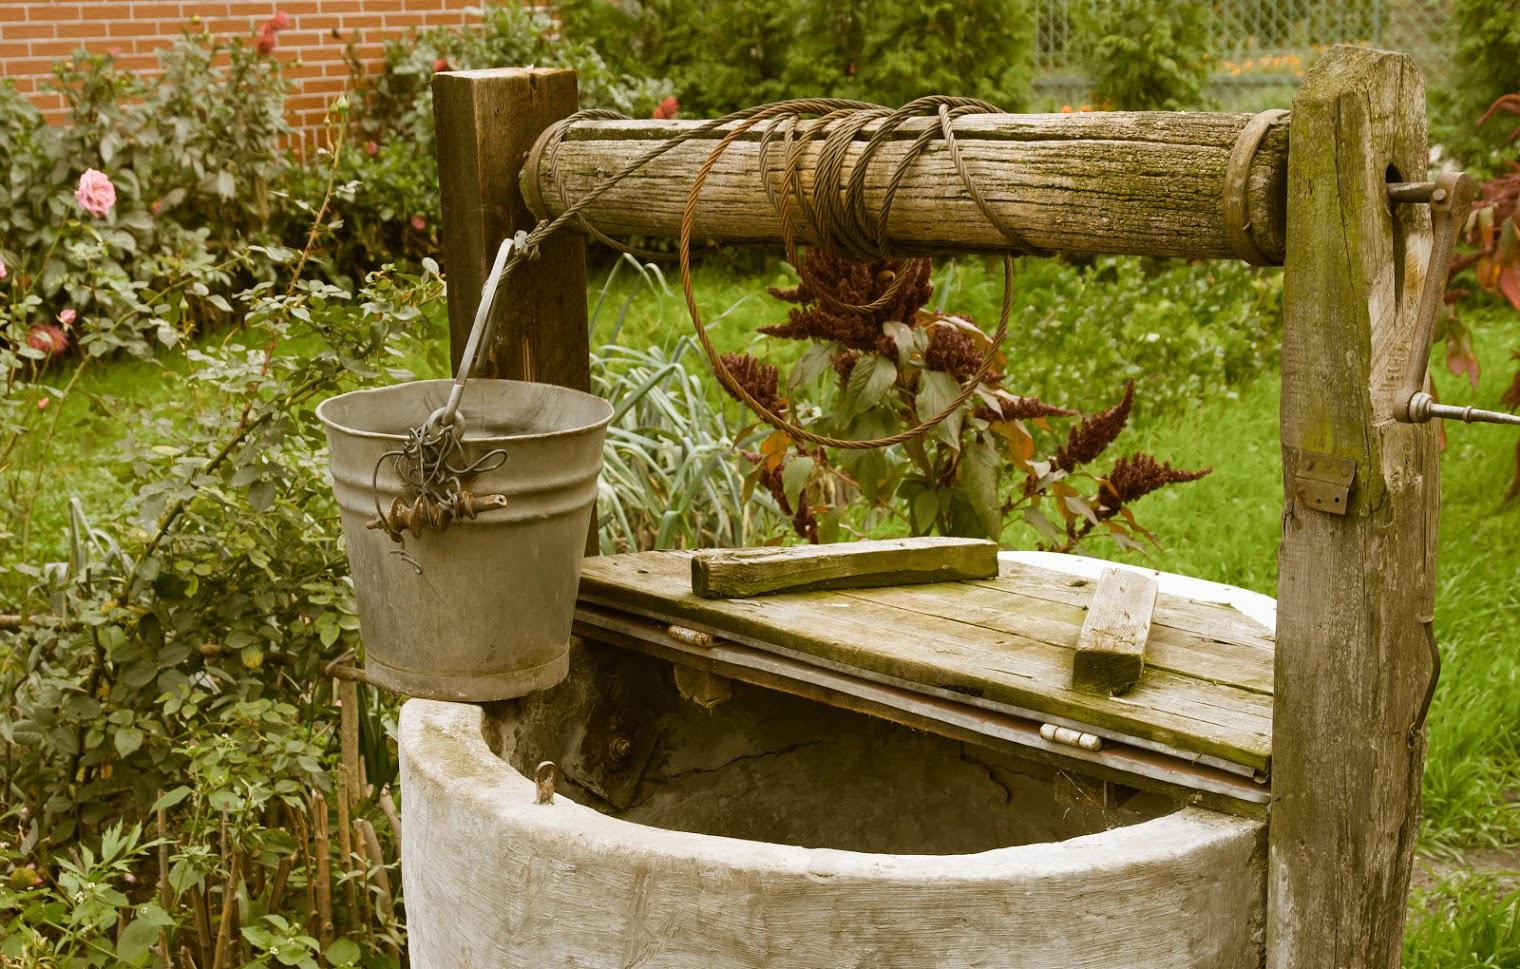 Residential Water Wells The 411